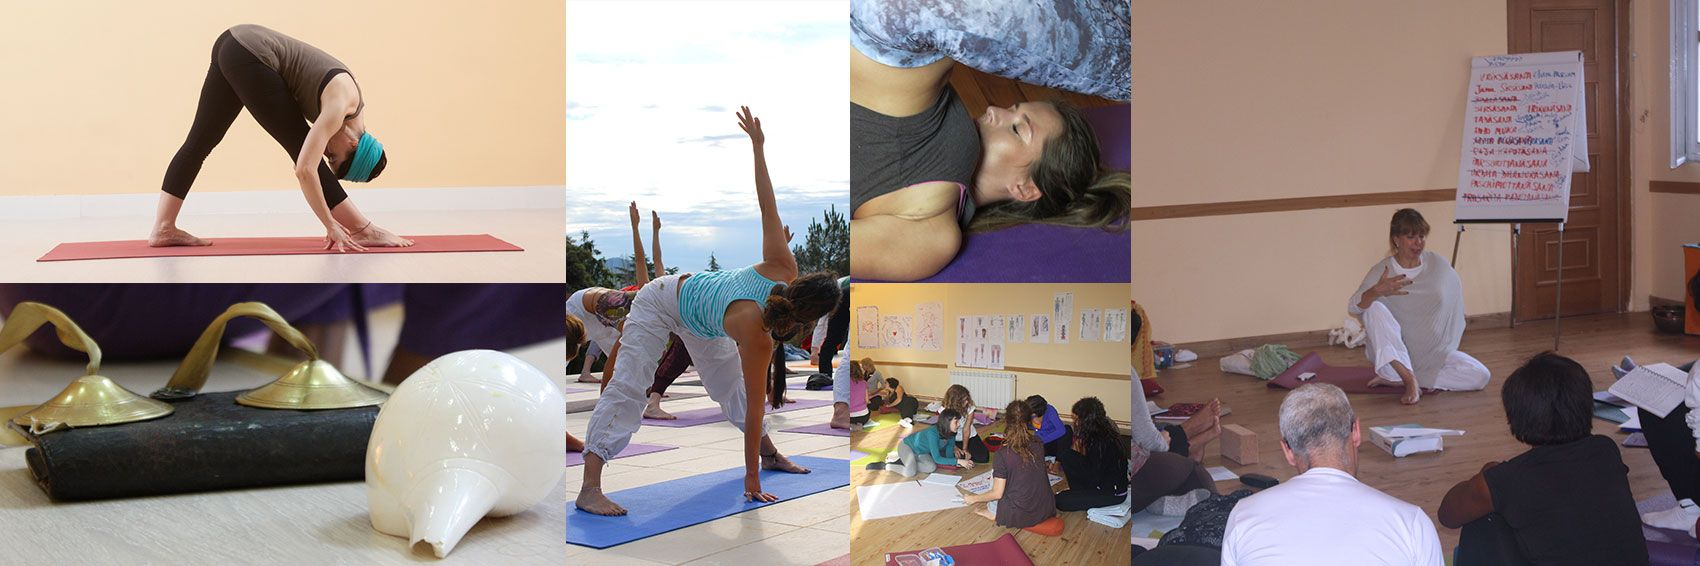 Collage Cursos de Yoga